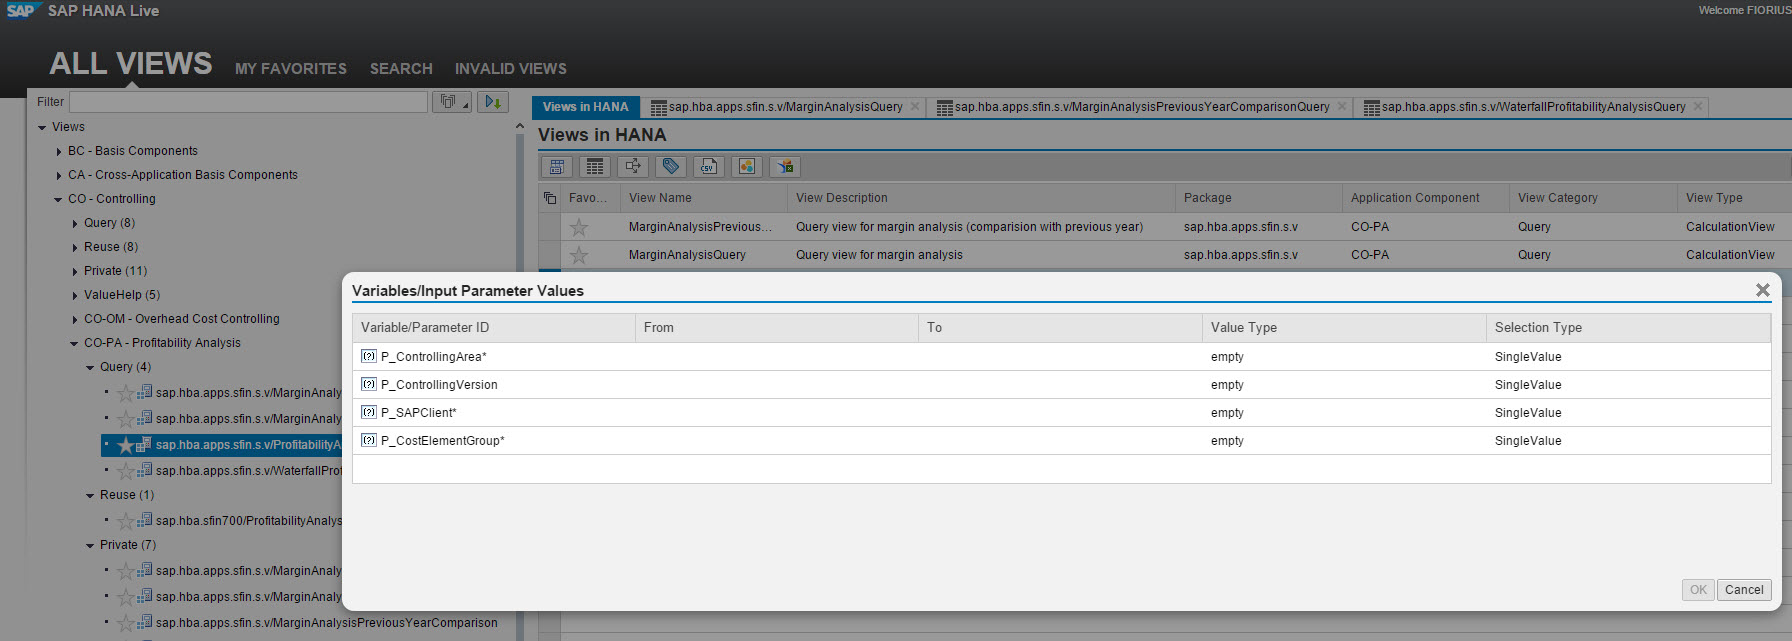 SAP S/4 Finance blog series-2-Reporting options with COPA as use